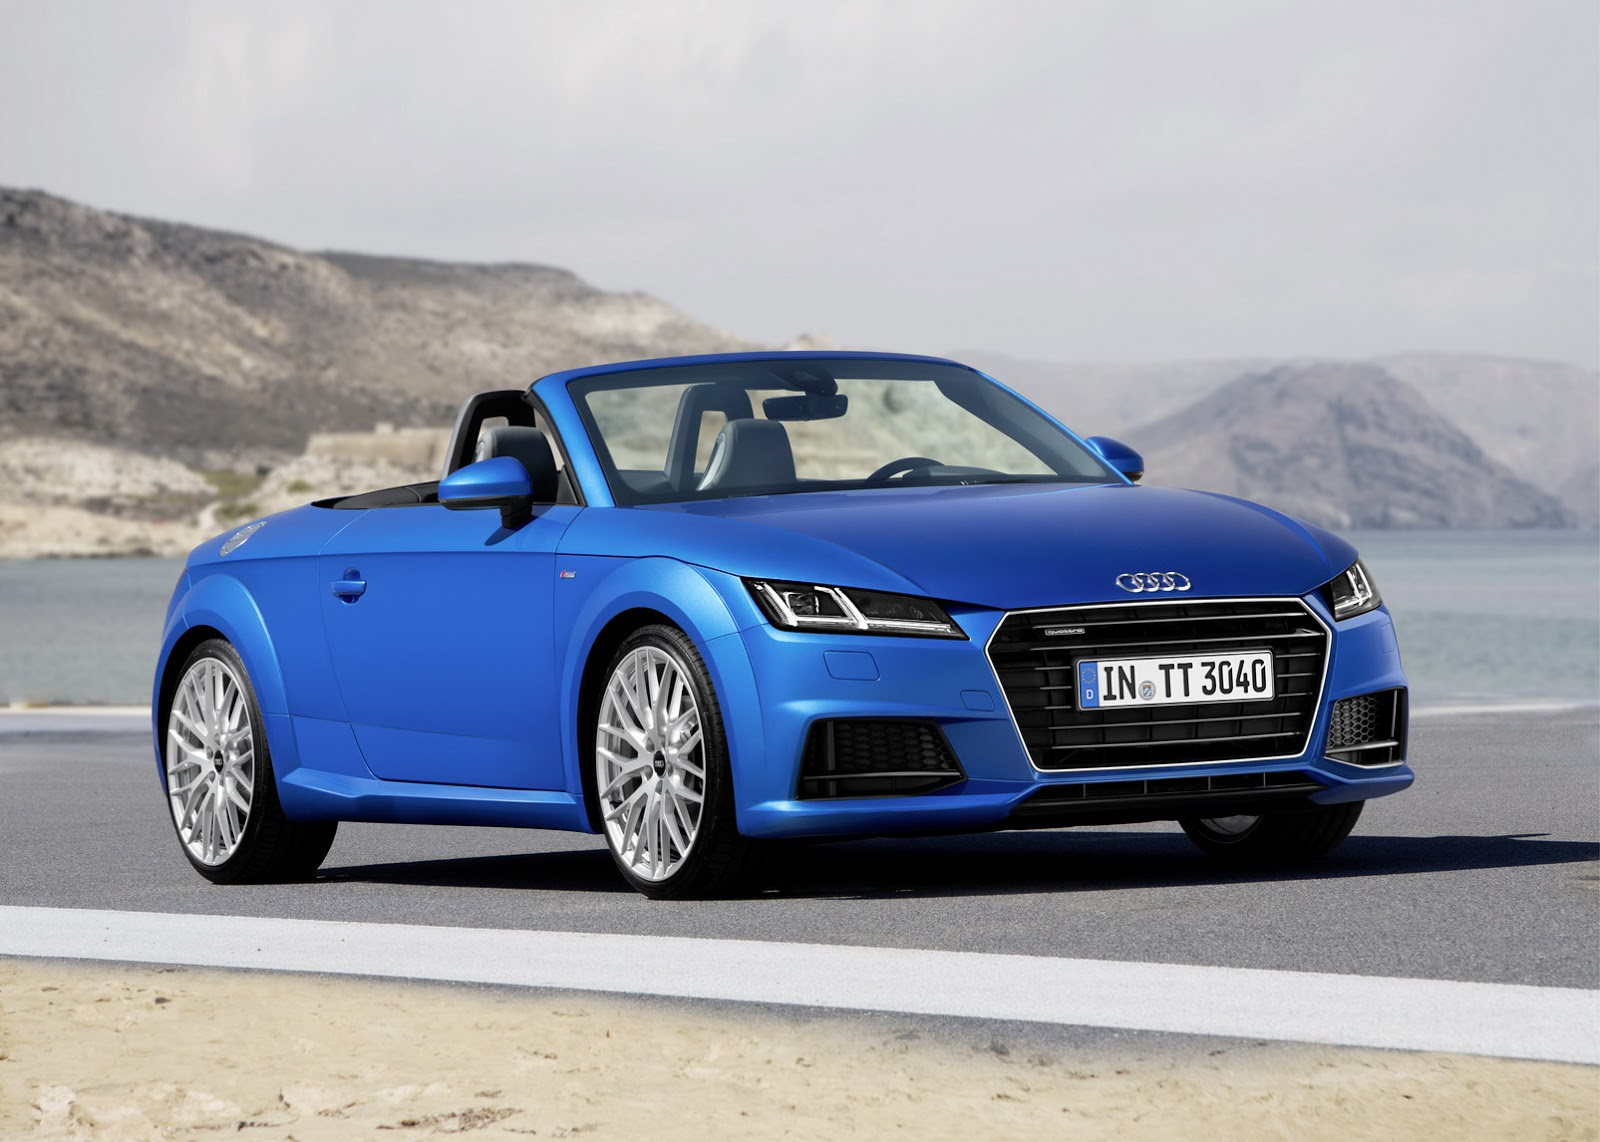 2016 audi tt roadster revealed motoroids. Black Bedroom Furniture Sets. Home Design Ideas